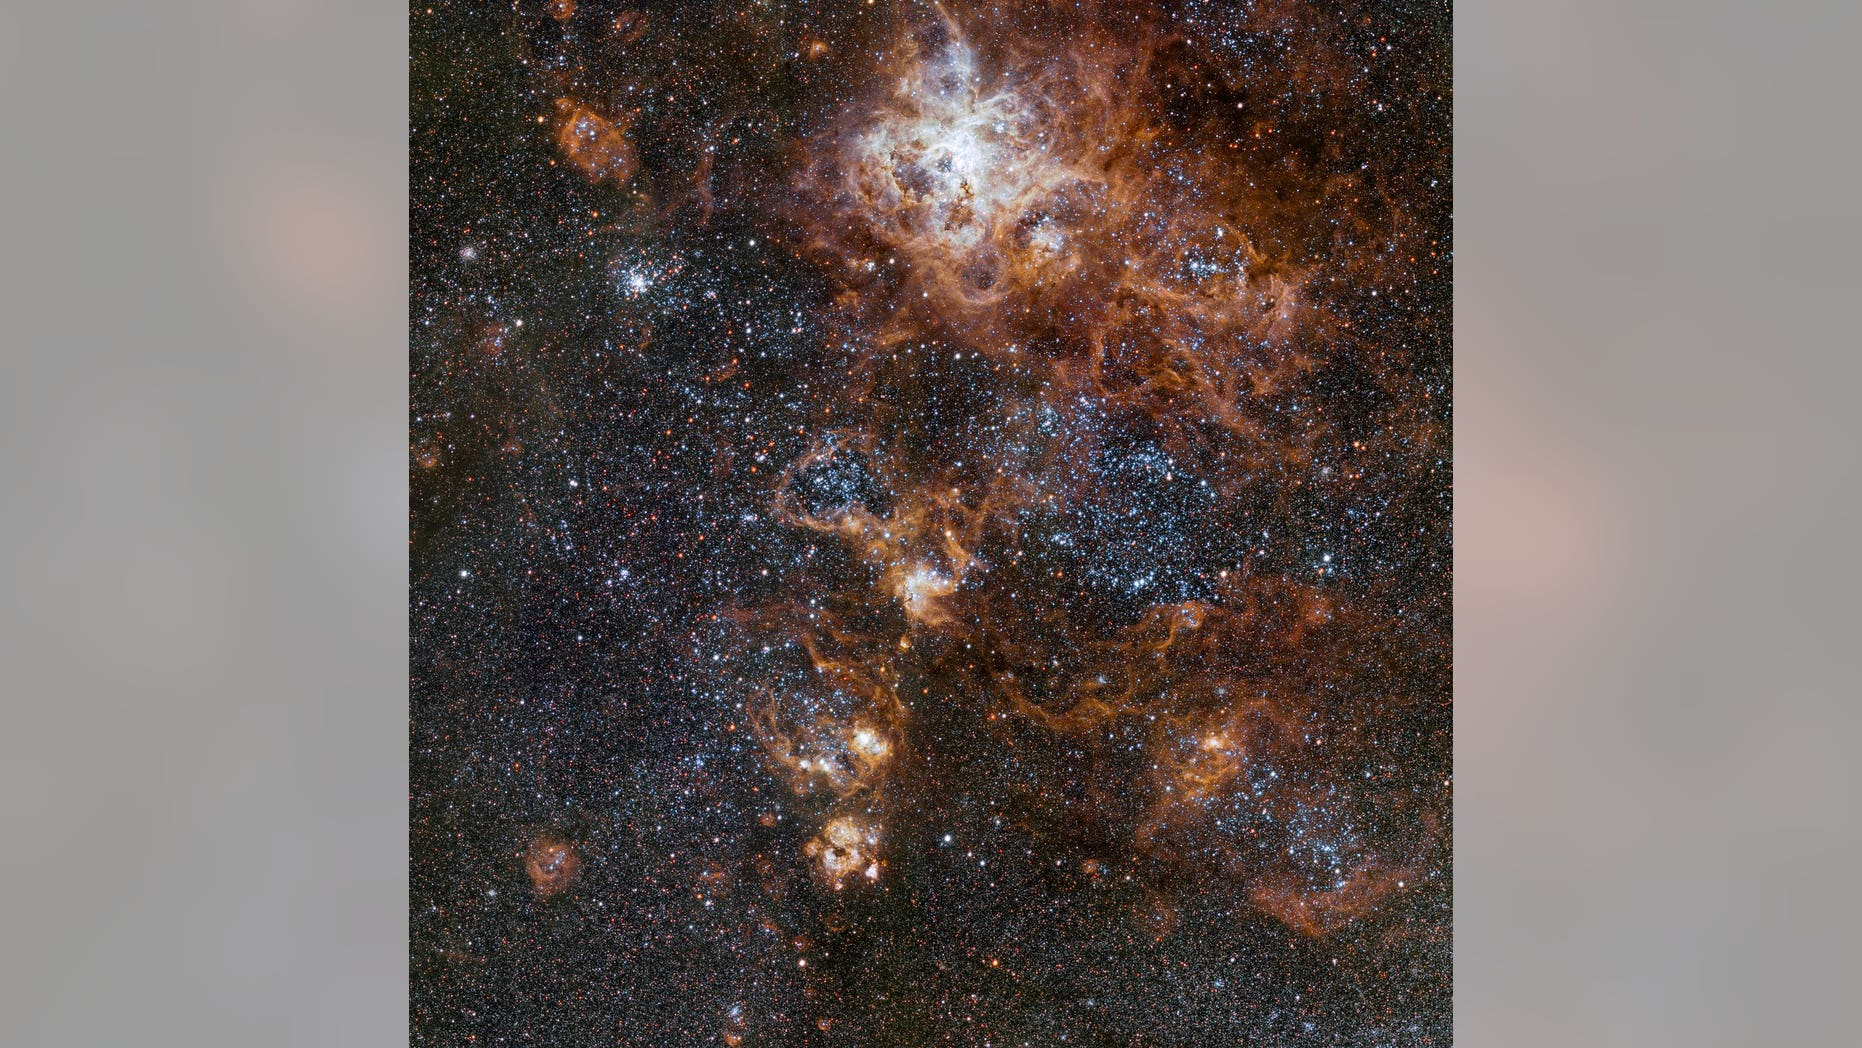 This image from VLT Survey Telescope at ESO'S Paranal Observatory in Chile showcases the brilliant Tarantula Nebula in the Large Magellanic Cloud.